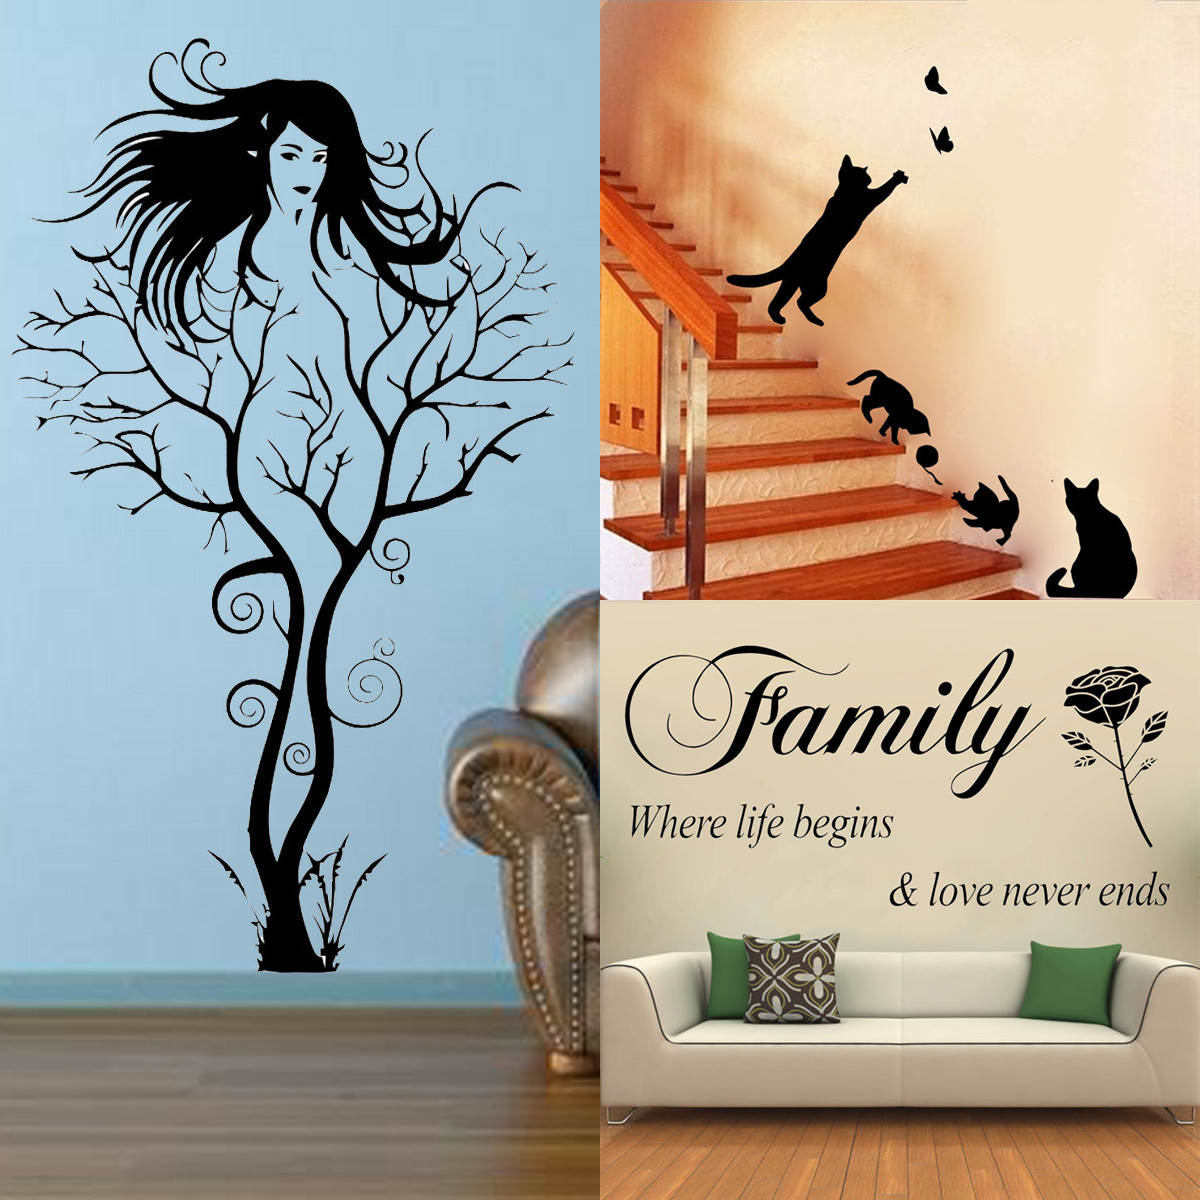 diy removable decal home office bedroom decor wall sticker wall stickers b amp q wall stickers decorationg ideas